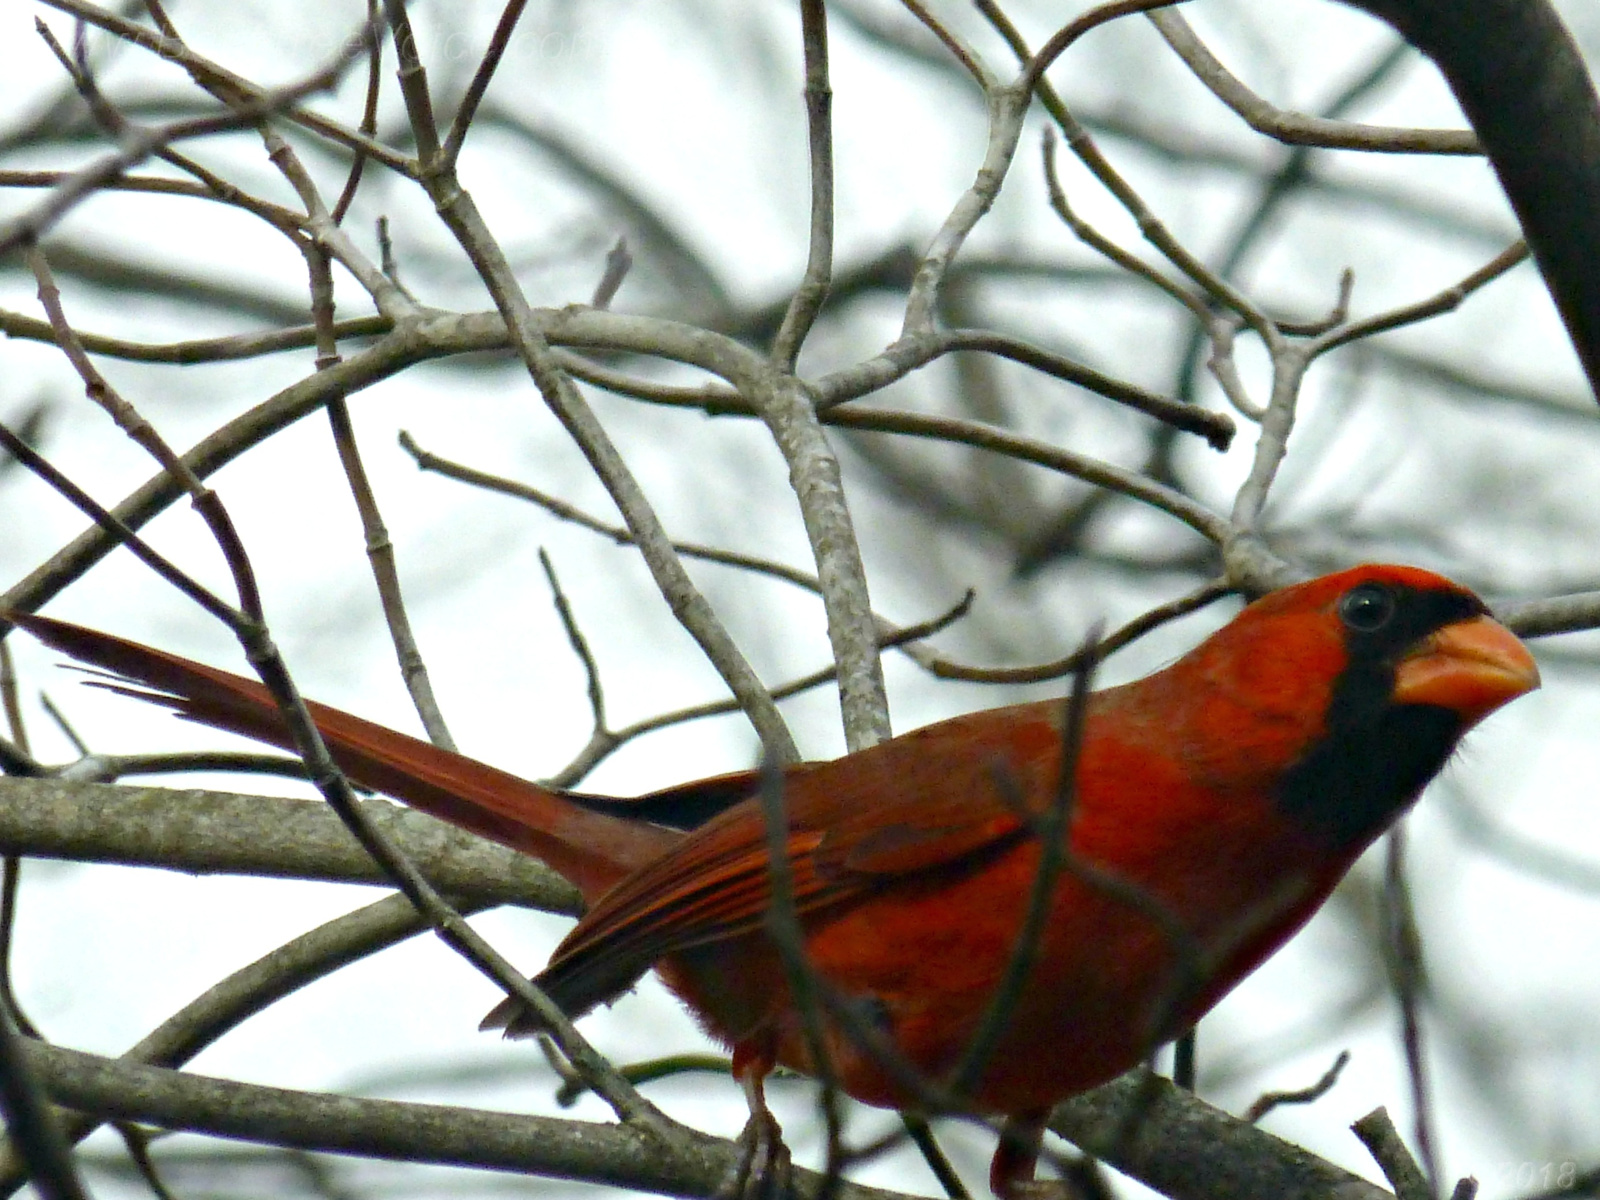 February 21, 2018 - male cardinal in Bent Tree